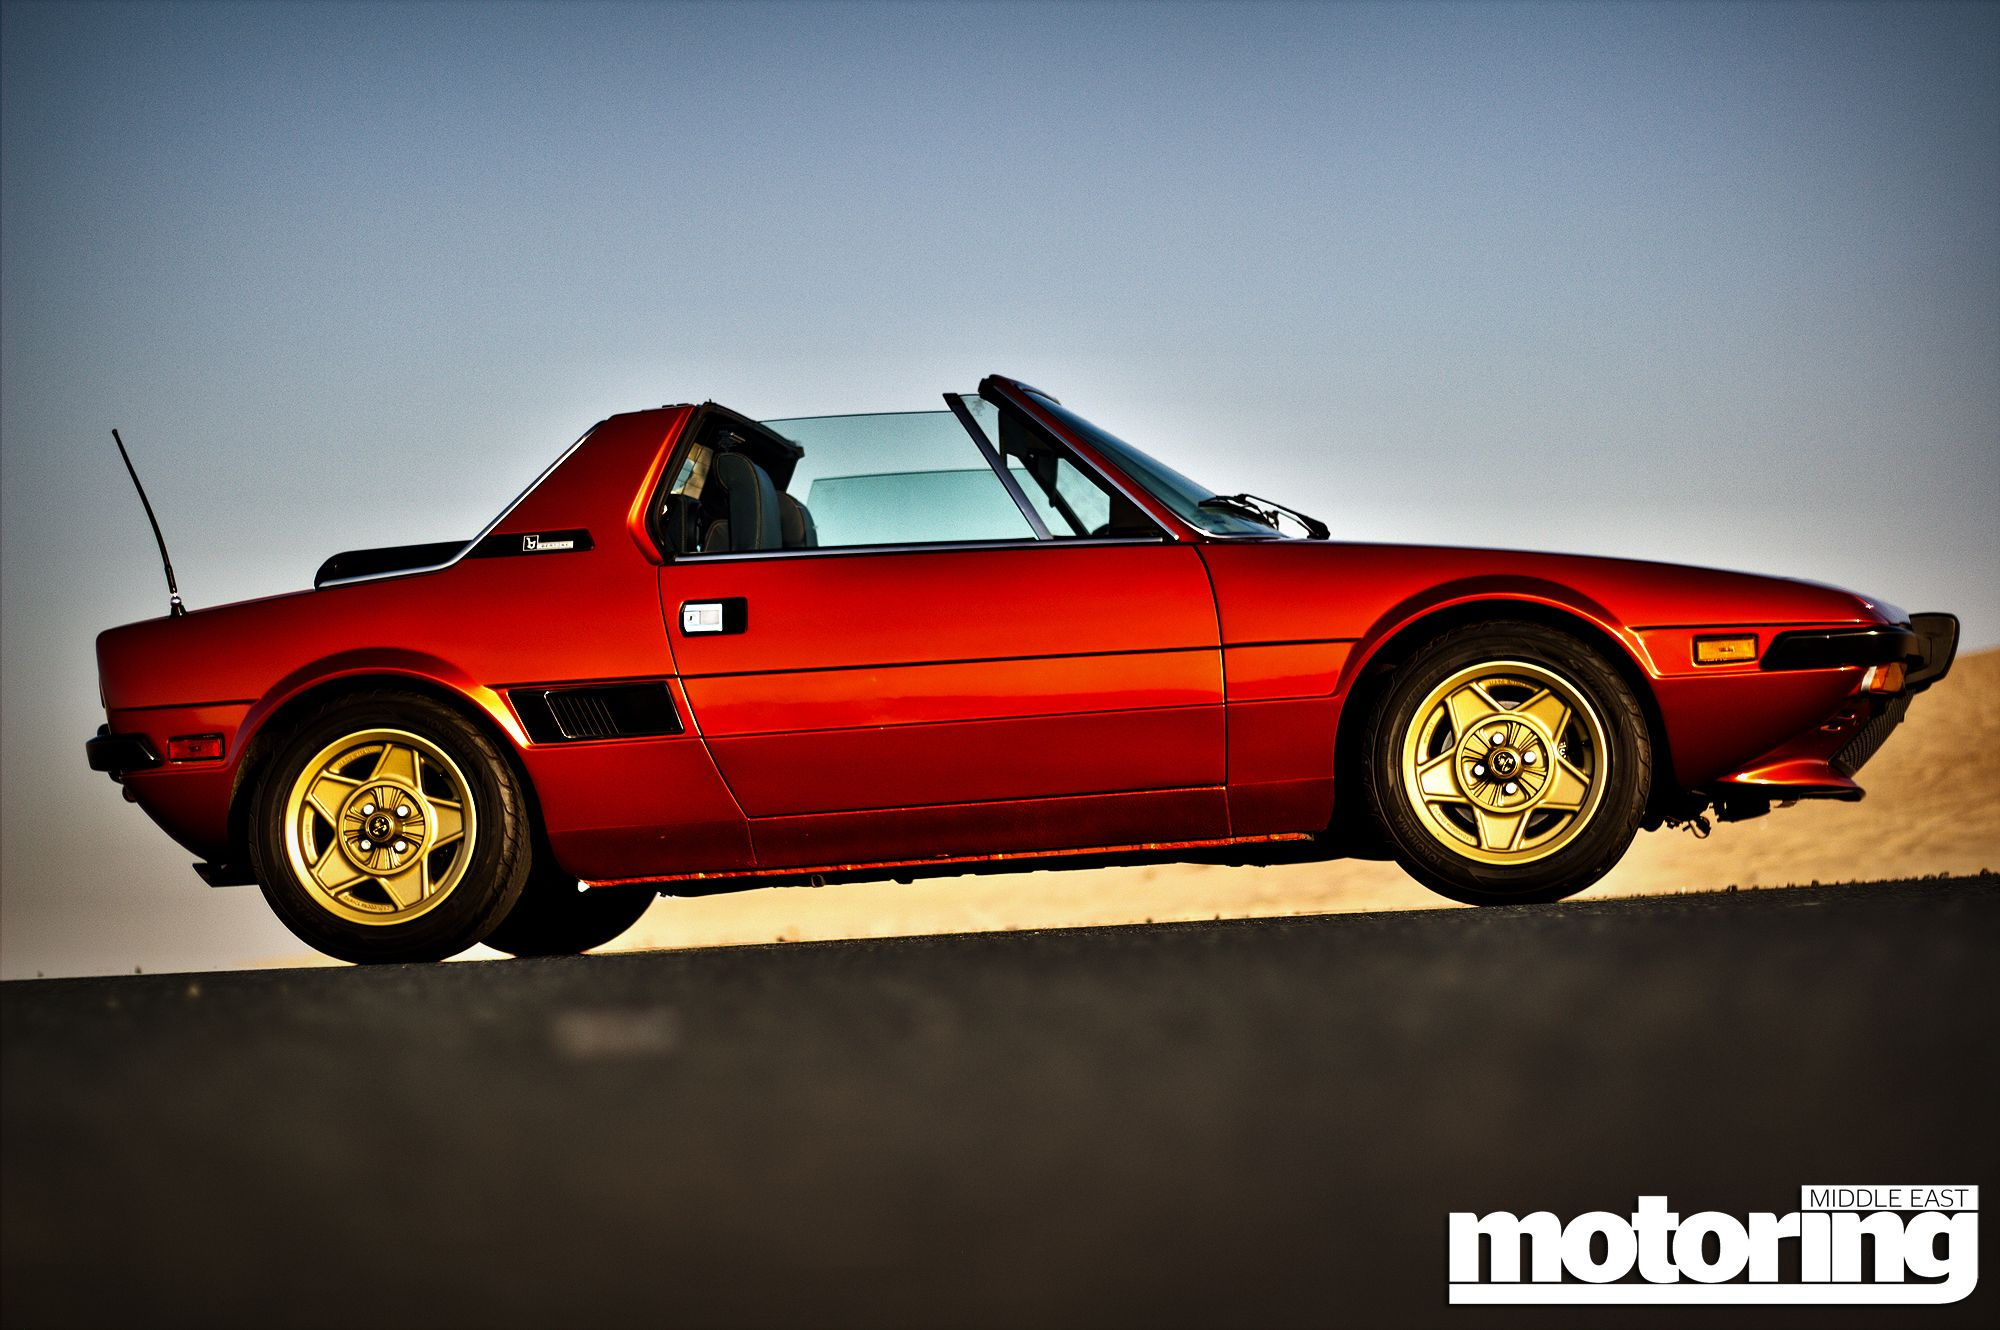 hight resolution of classic fiat x1 9 in dubai